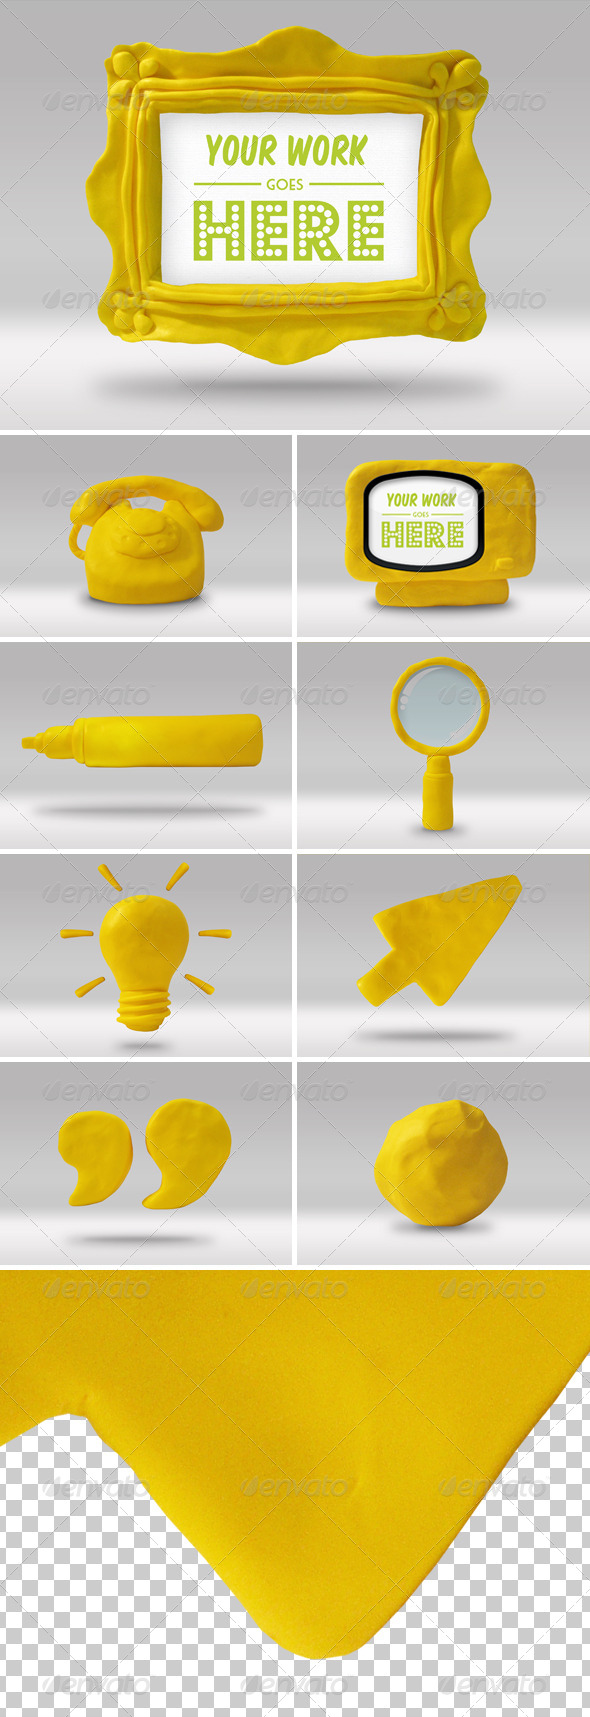 GraphicRiver Set of 9 Handmade High-res Play Doh Icons 4114429